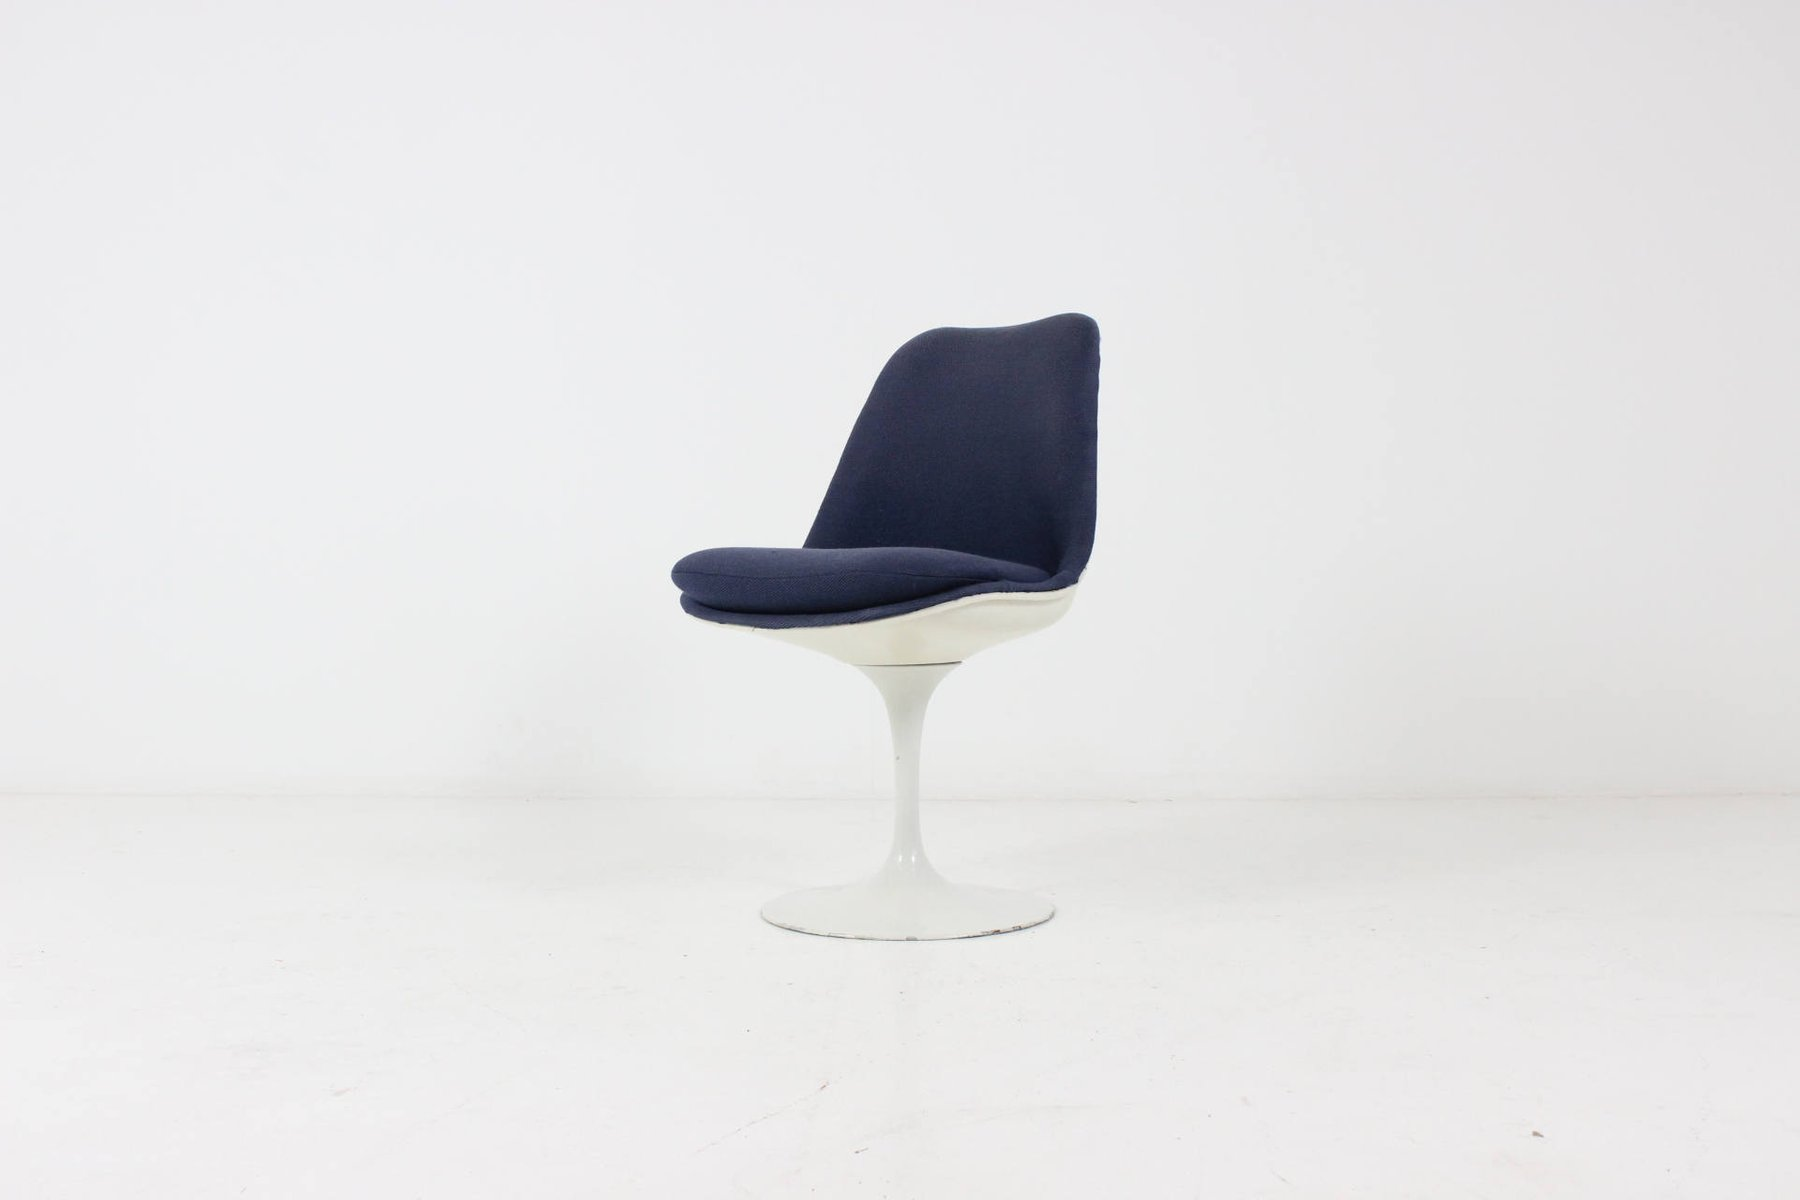 Swivel tulip chair by eero saarinen for knoll for sale at - Sedia tulip knoll ...